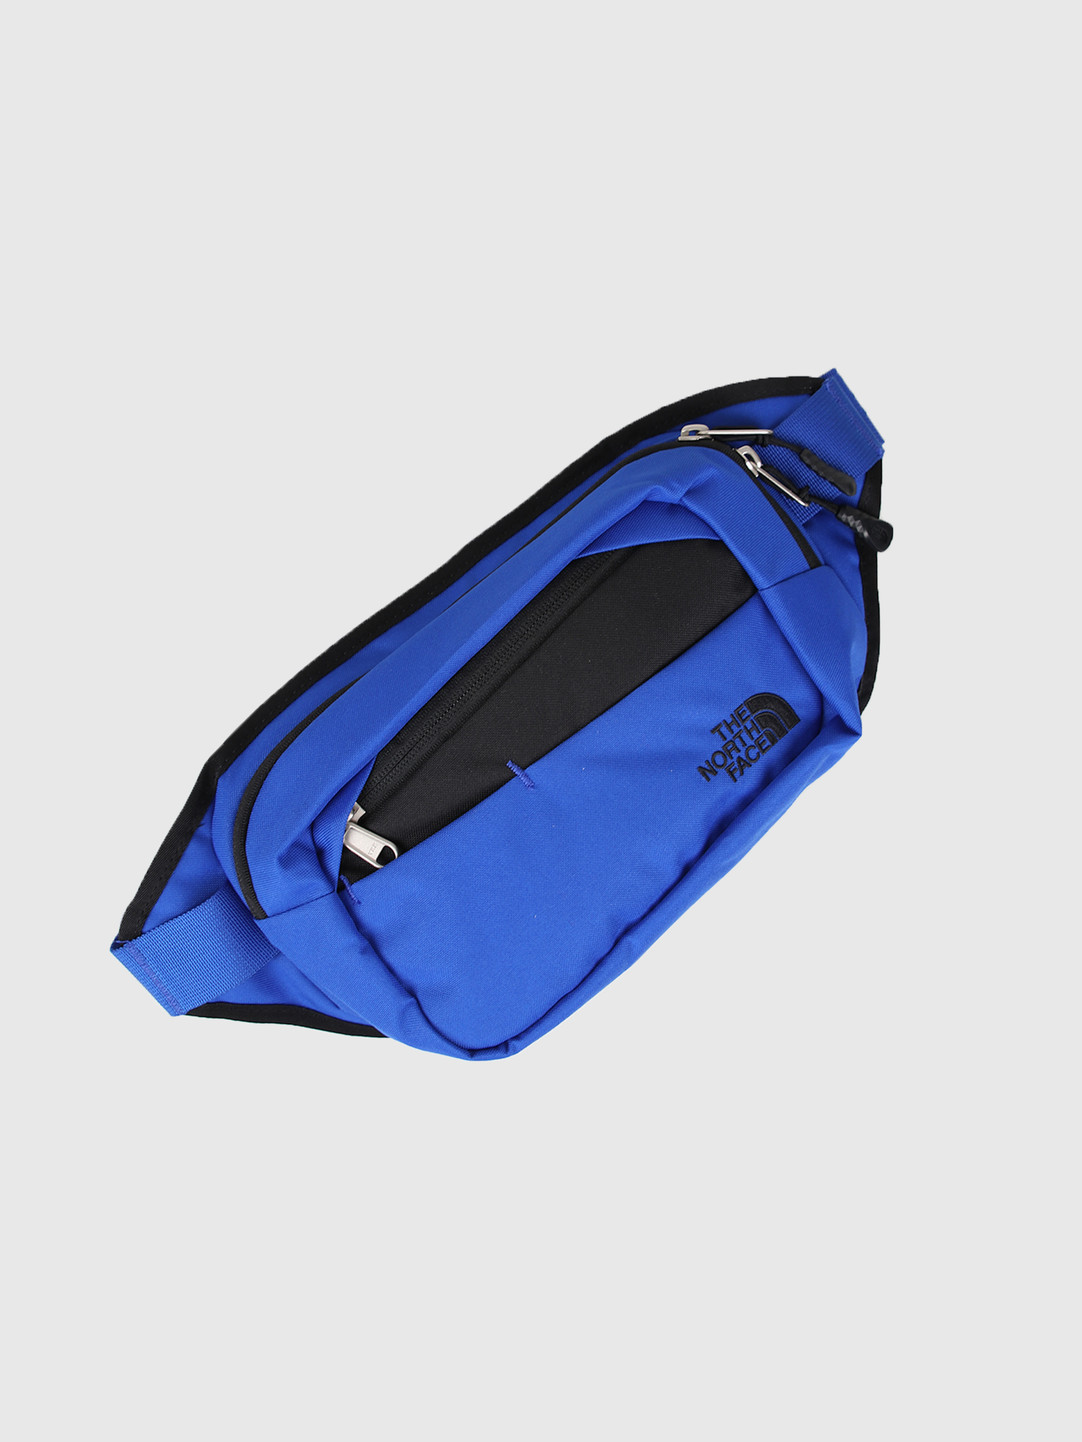 The North Face The North Face Bozer Hip Pack II Blue Black T92UCXEF1